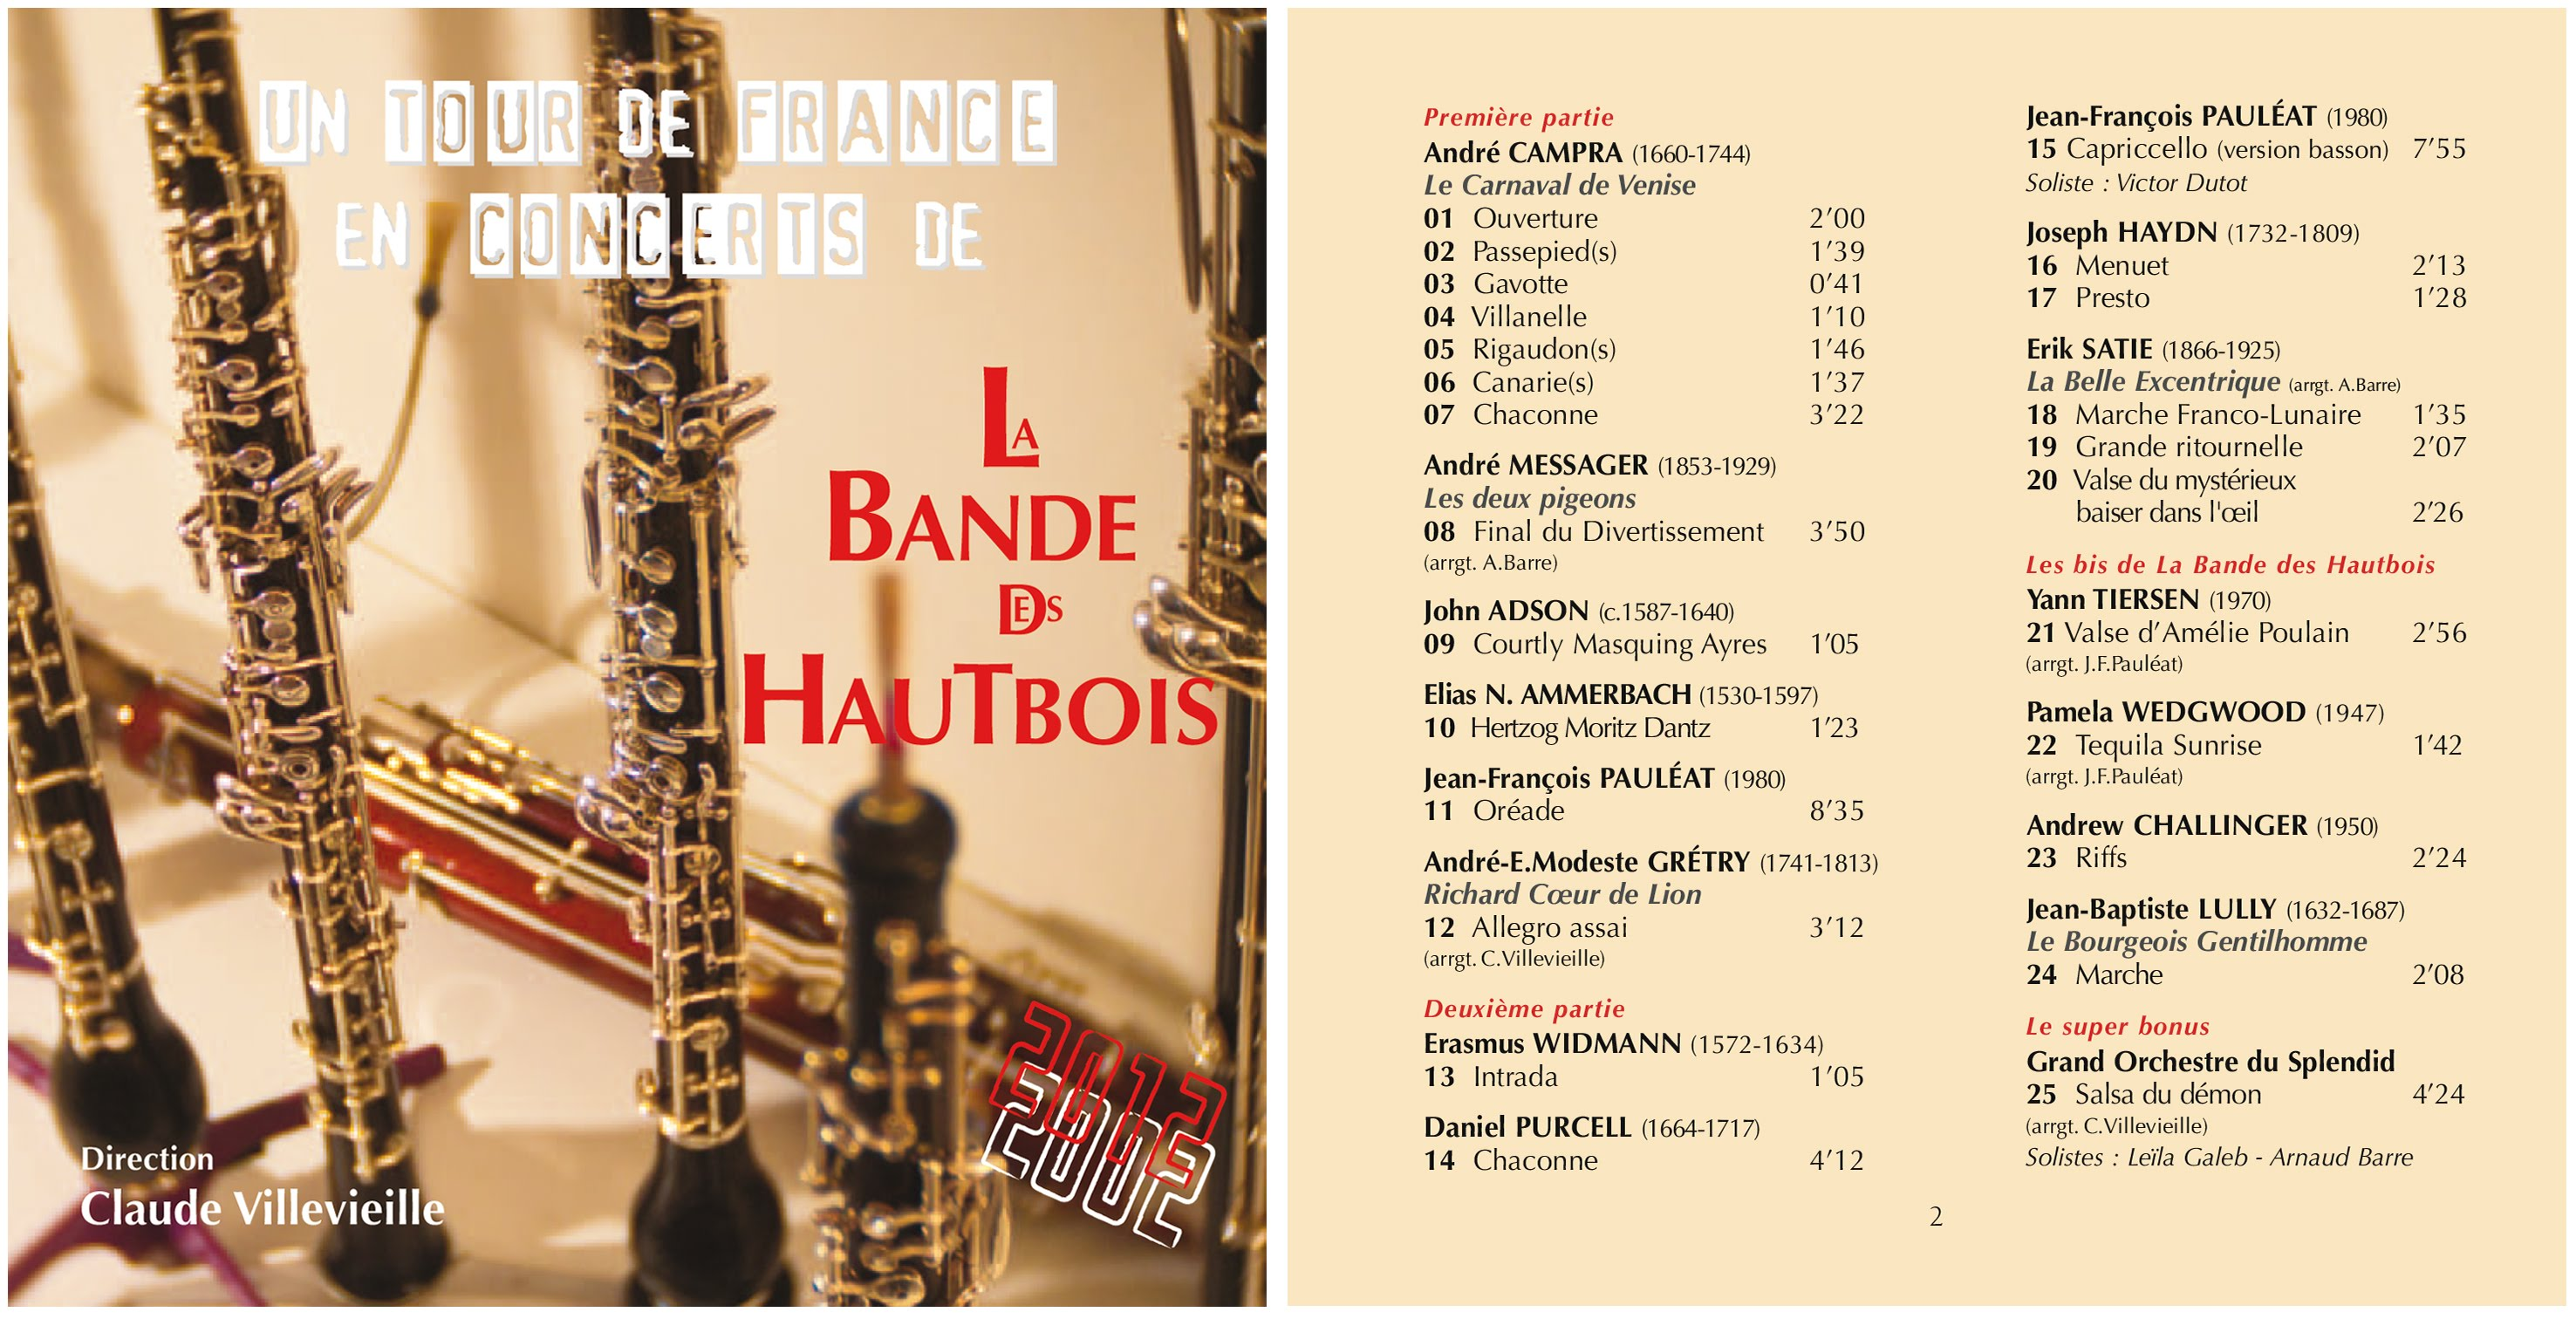 CD-BHA3 : Un TOUR de FRANCE en CONCERTS